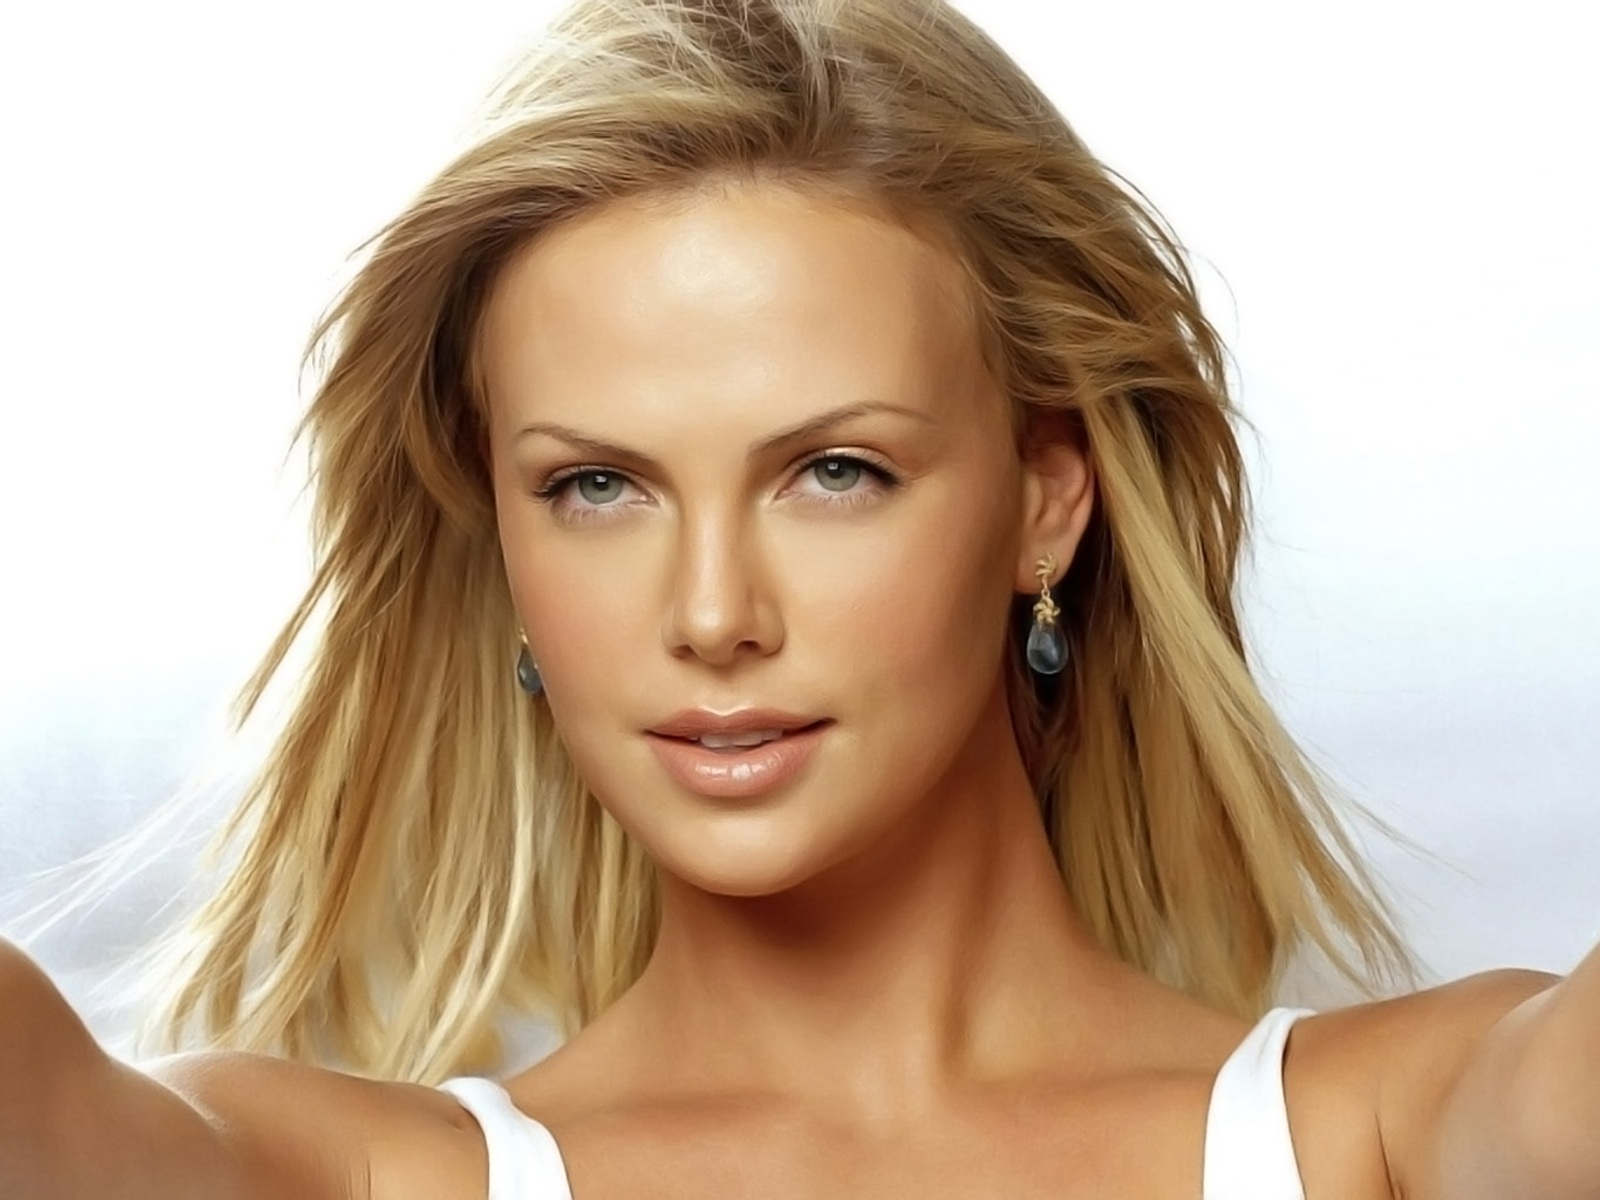 Beautiful Female Celebrities Images Charlize Theron Hd Wallpaper And